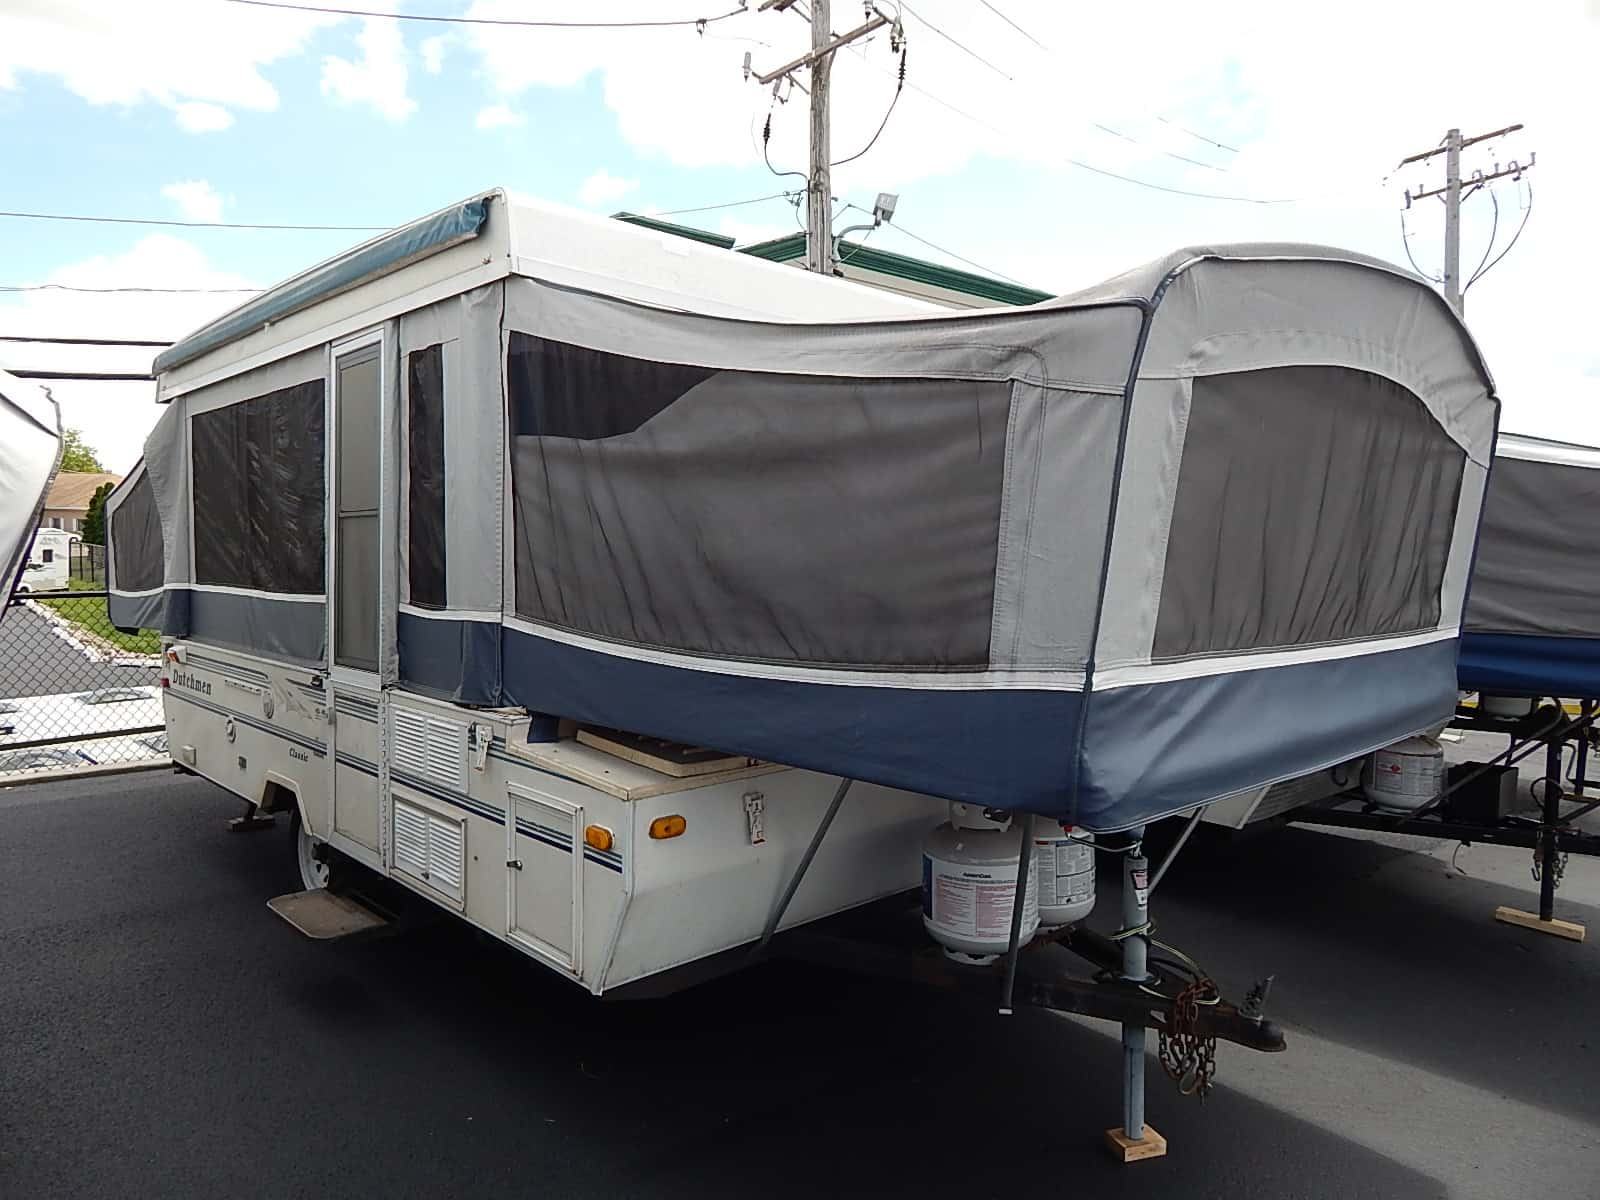 USED 1999 DUTCHMEN DUTCHMEN 747 - Rick's RV Center